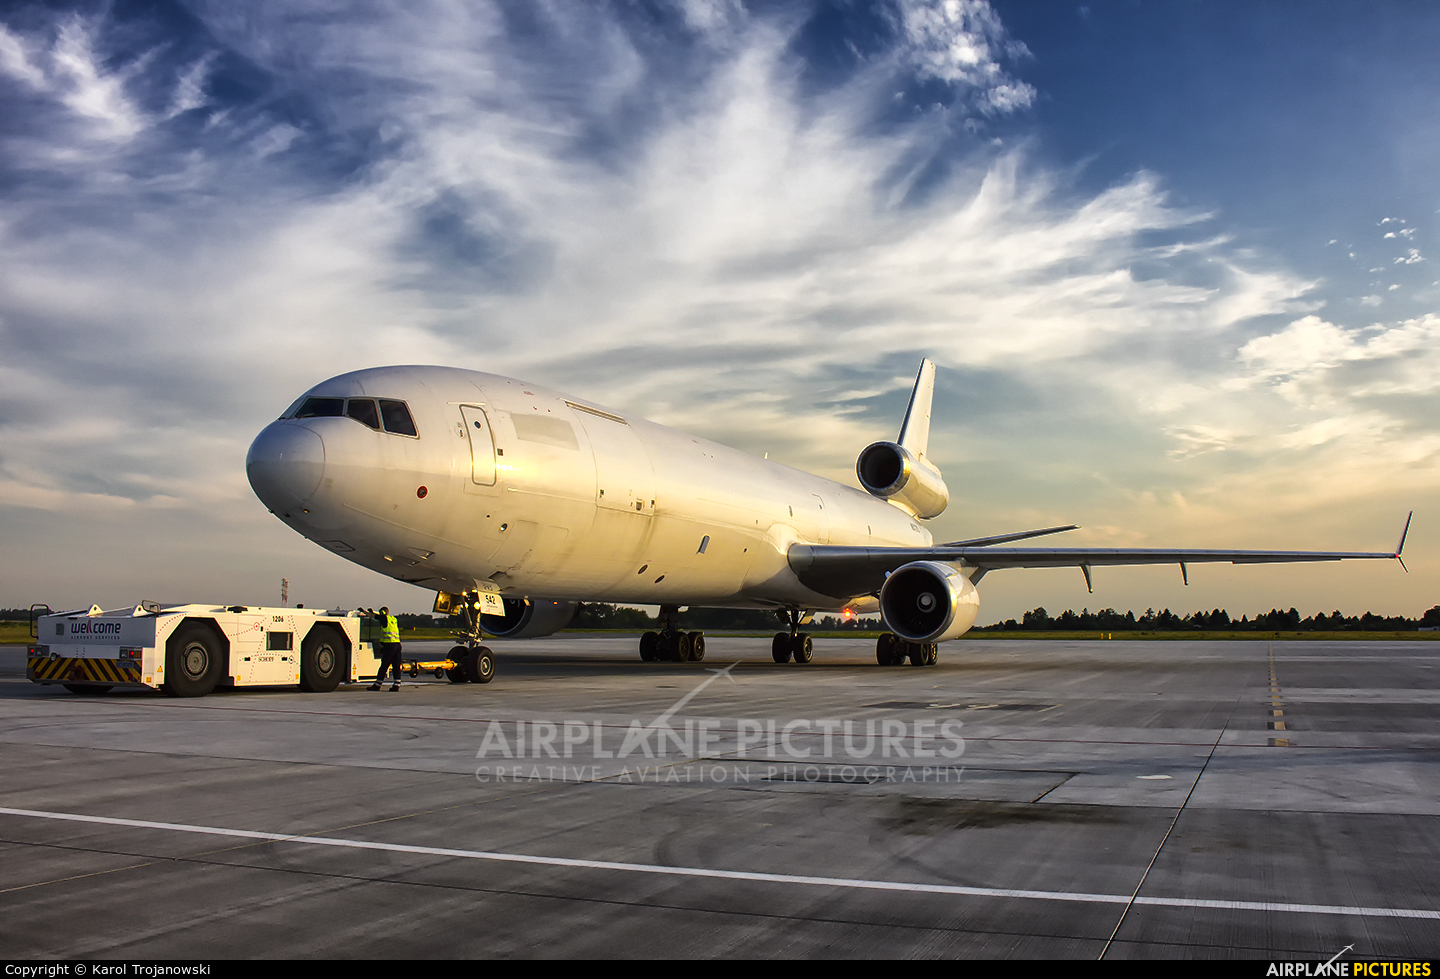 Western Global Airlines N542KD aircraft at Warsaw - Frederic Chopin